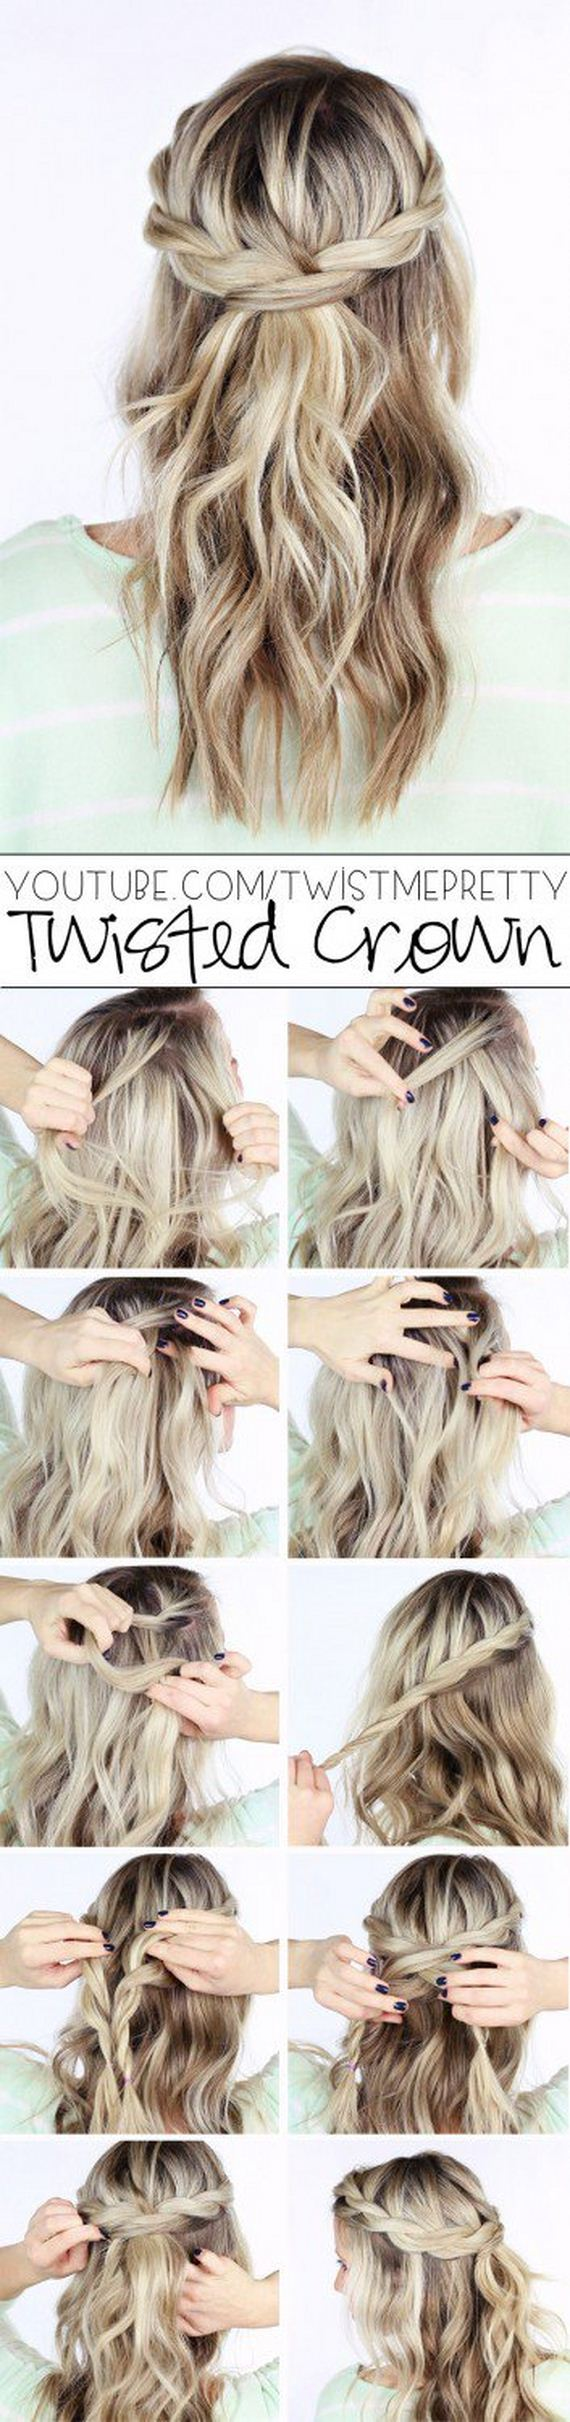 10-DIY-Hairstyles-for-Long-Hair